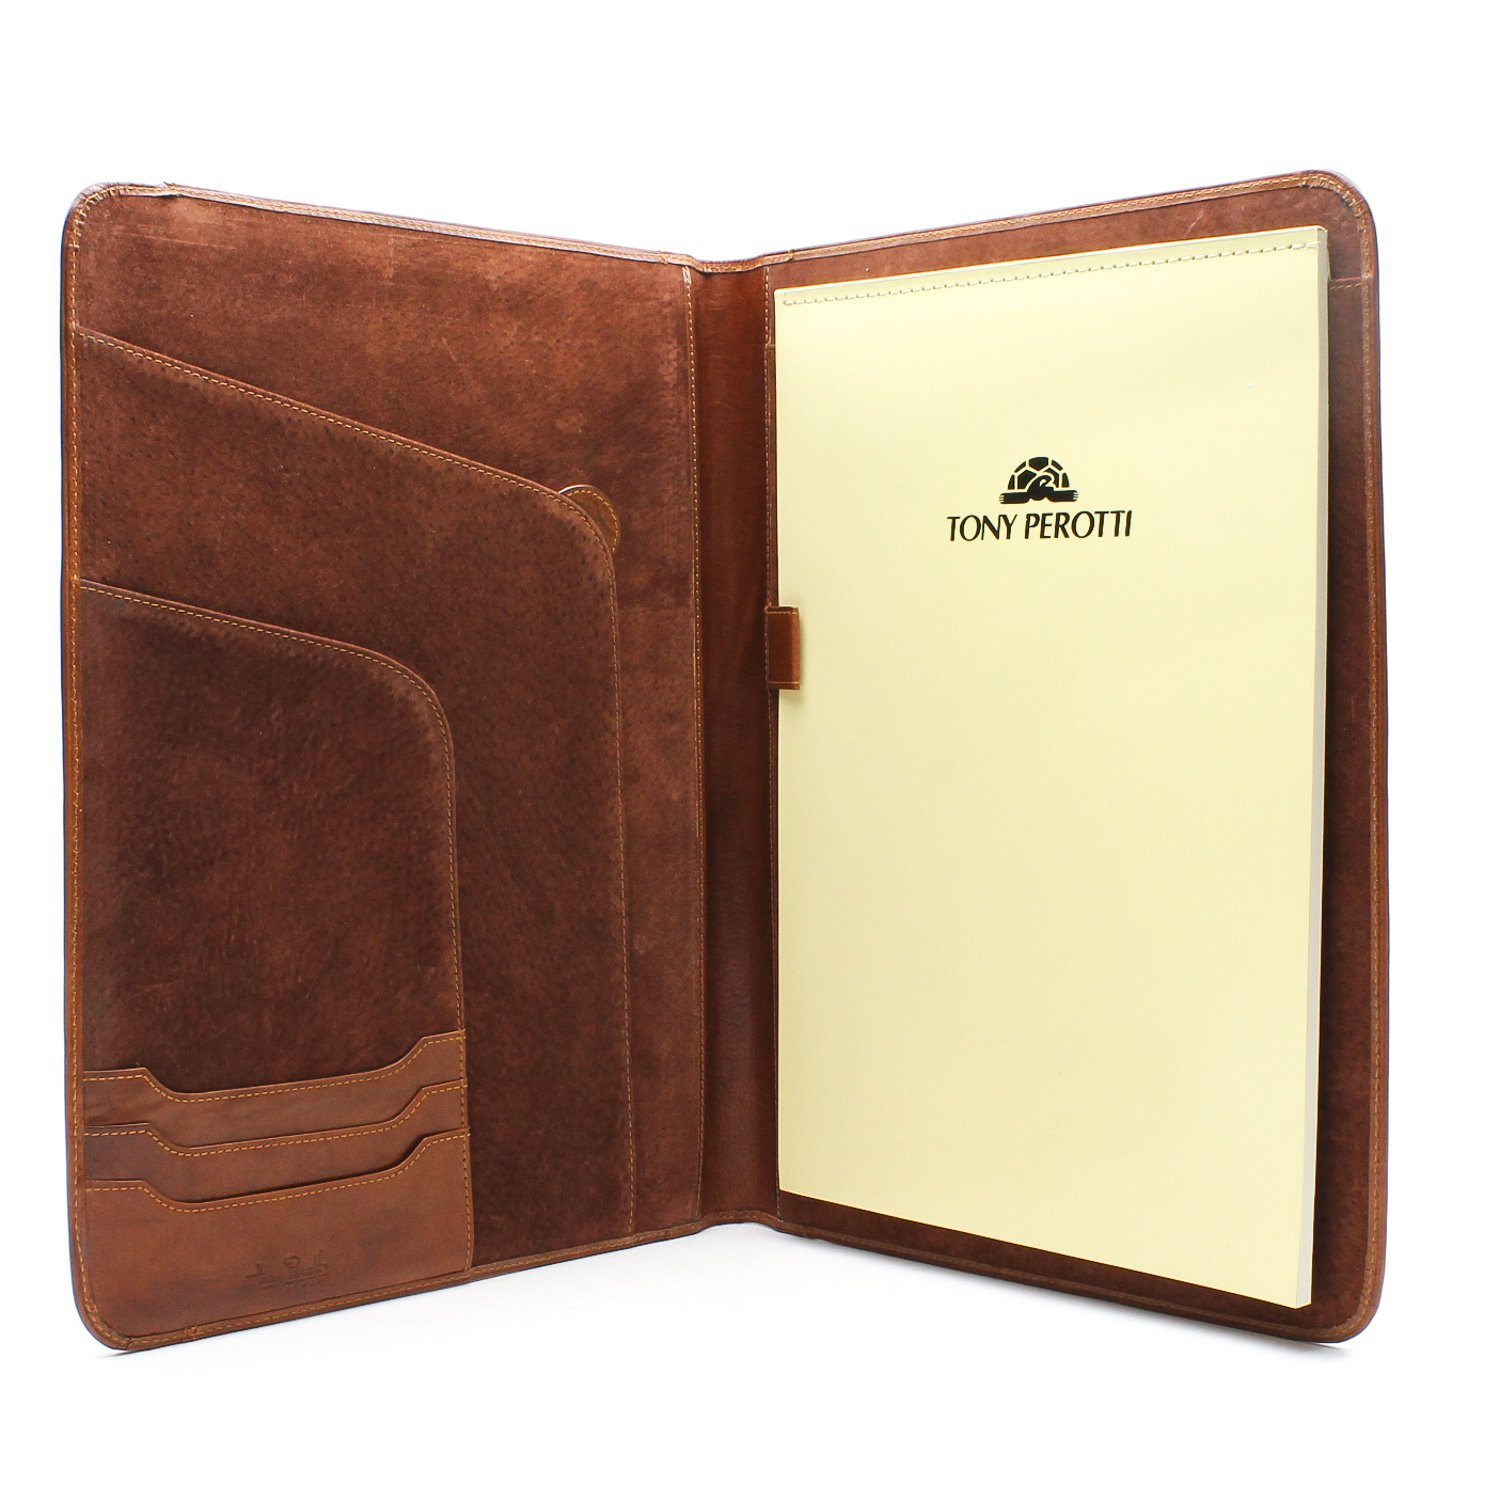 Tony Perotti Unisex Italian Bull Leather [Personalized Initials Embossing] Express Business 8.5'' x 11'' Writing Padfolio in Cognac